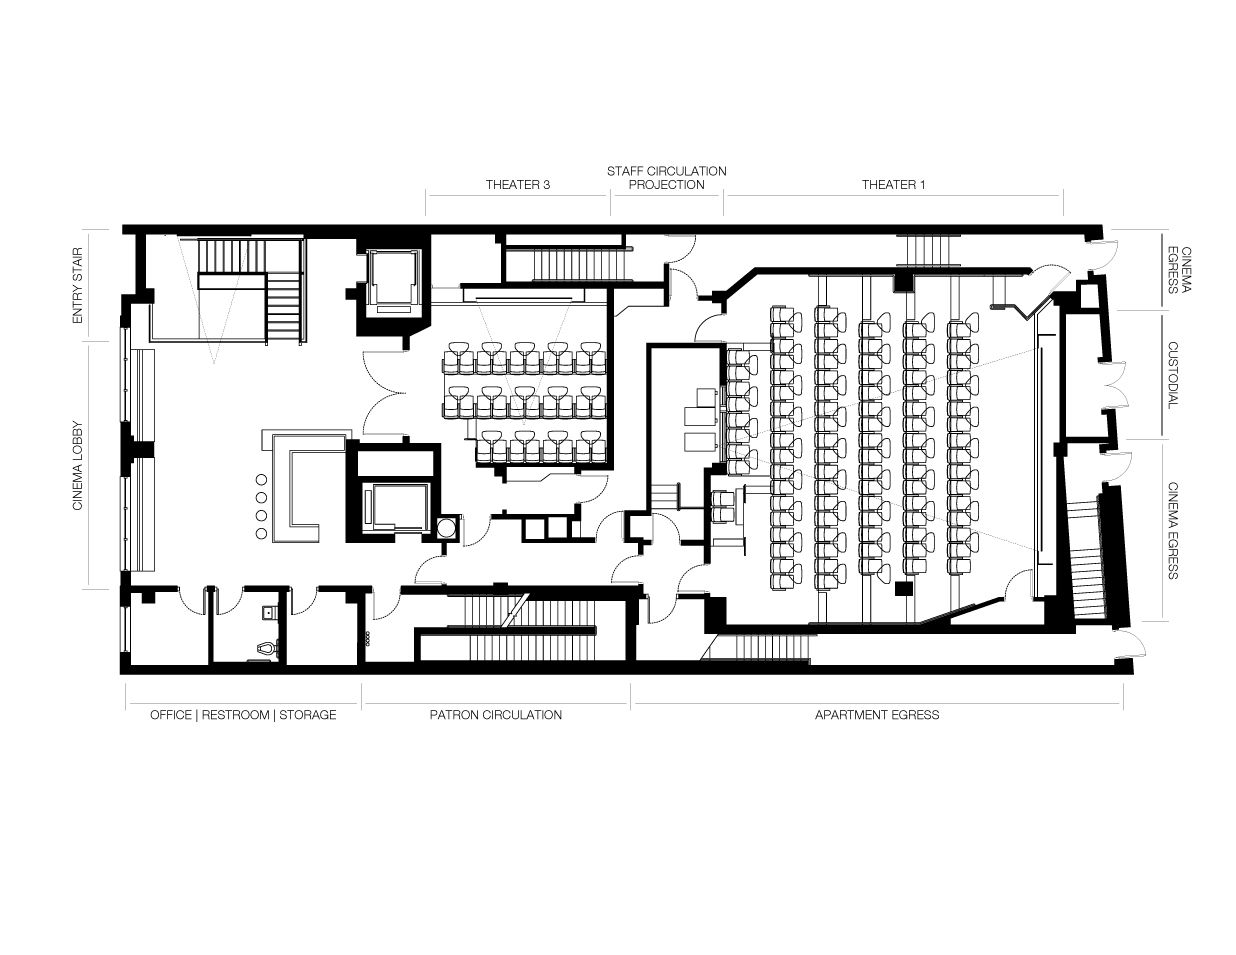 small cinema plan  szukaj w google  theatre  cinema  pinterest . small cinema plan  szukaj w google